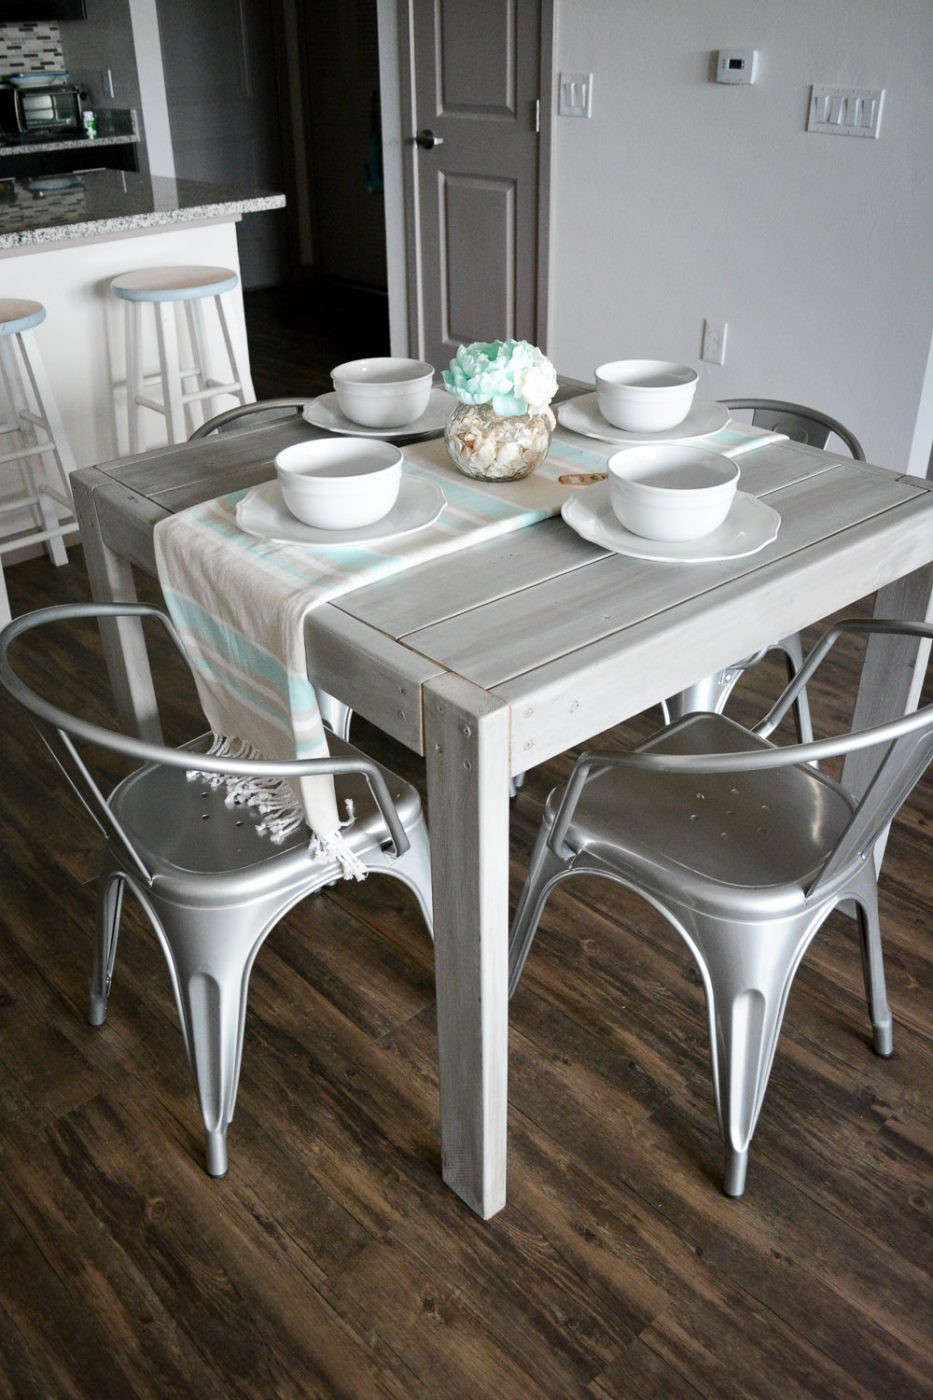 Best ideas about DIY Farmhouse Kitchen Table . Save or Pin DIY Farmhouse Table For Under $40 Now.